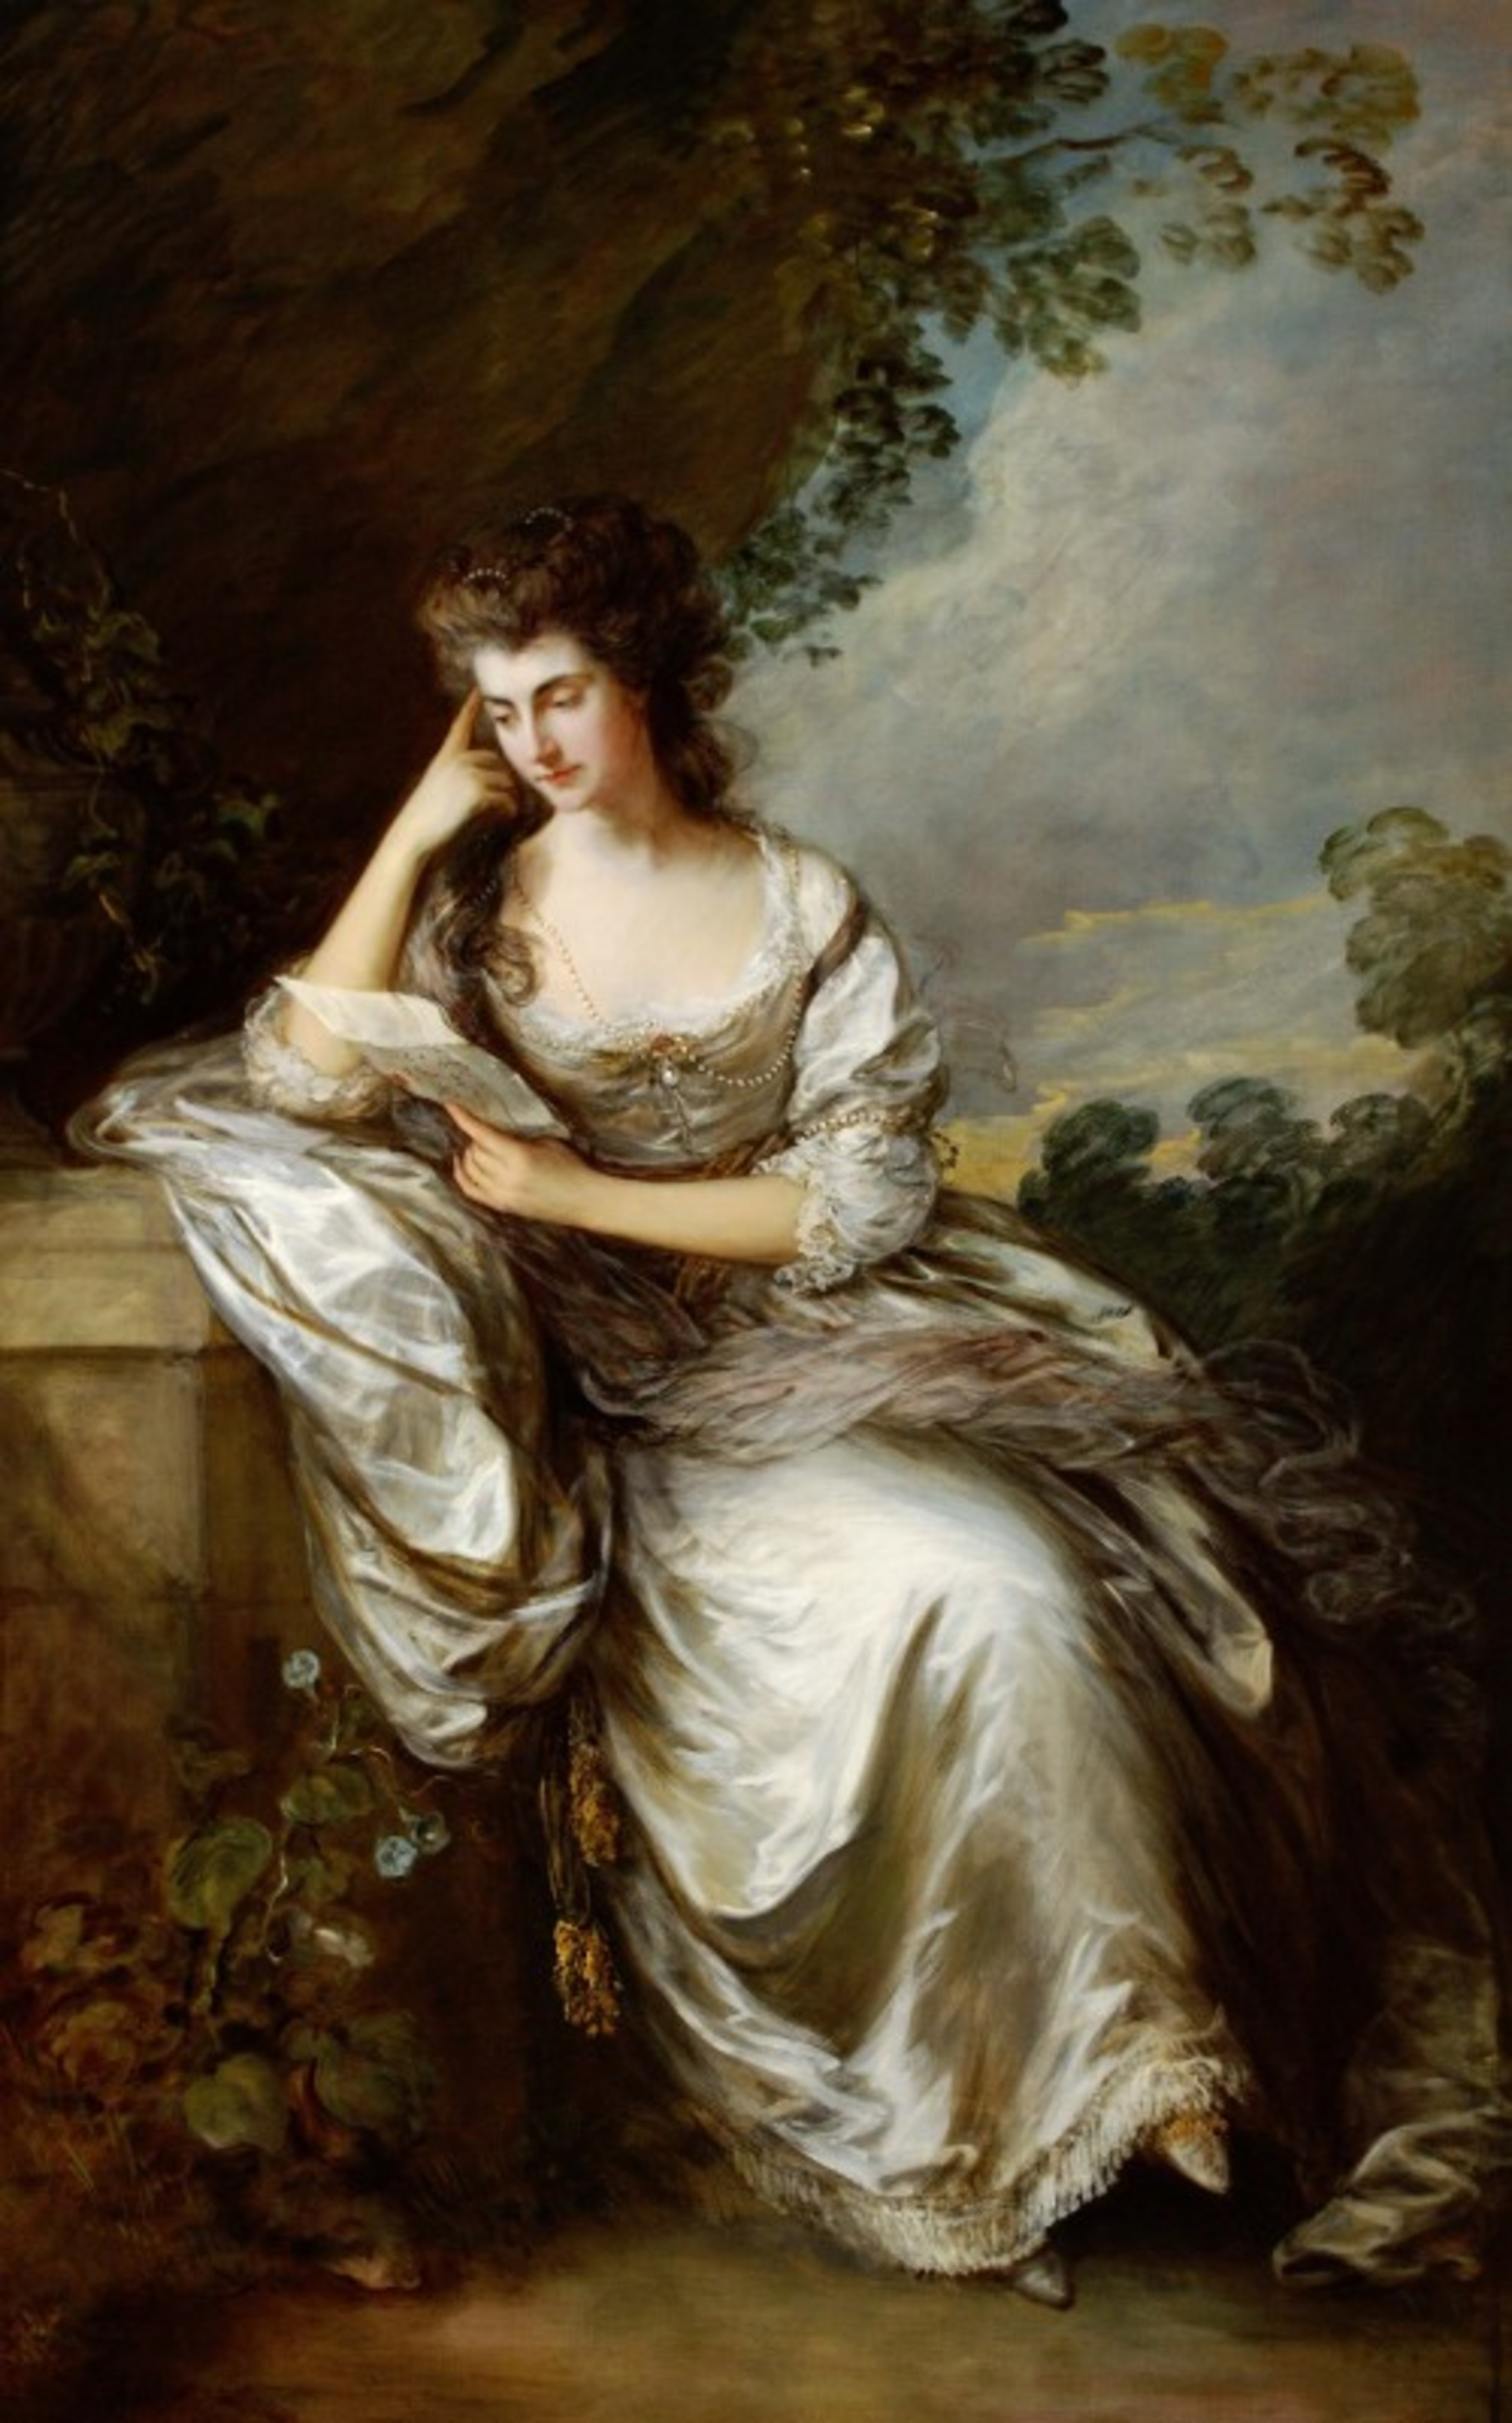 Thomas_Gainsborough_Frances_Browne_Mrs_John_Douglas_1746_-_1811_1783-84_at_Waddesdon_Manor.jpg